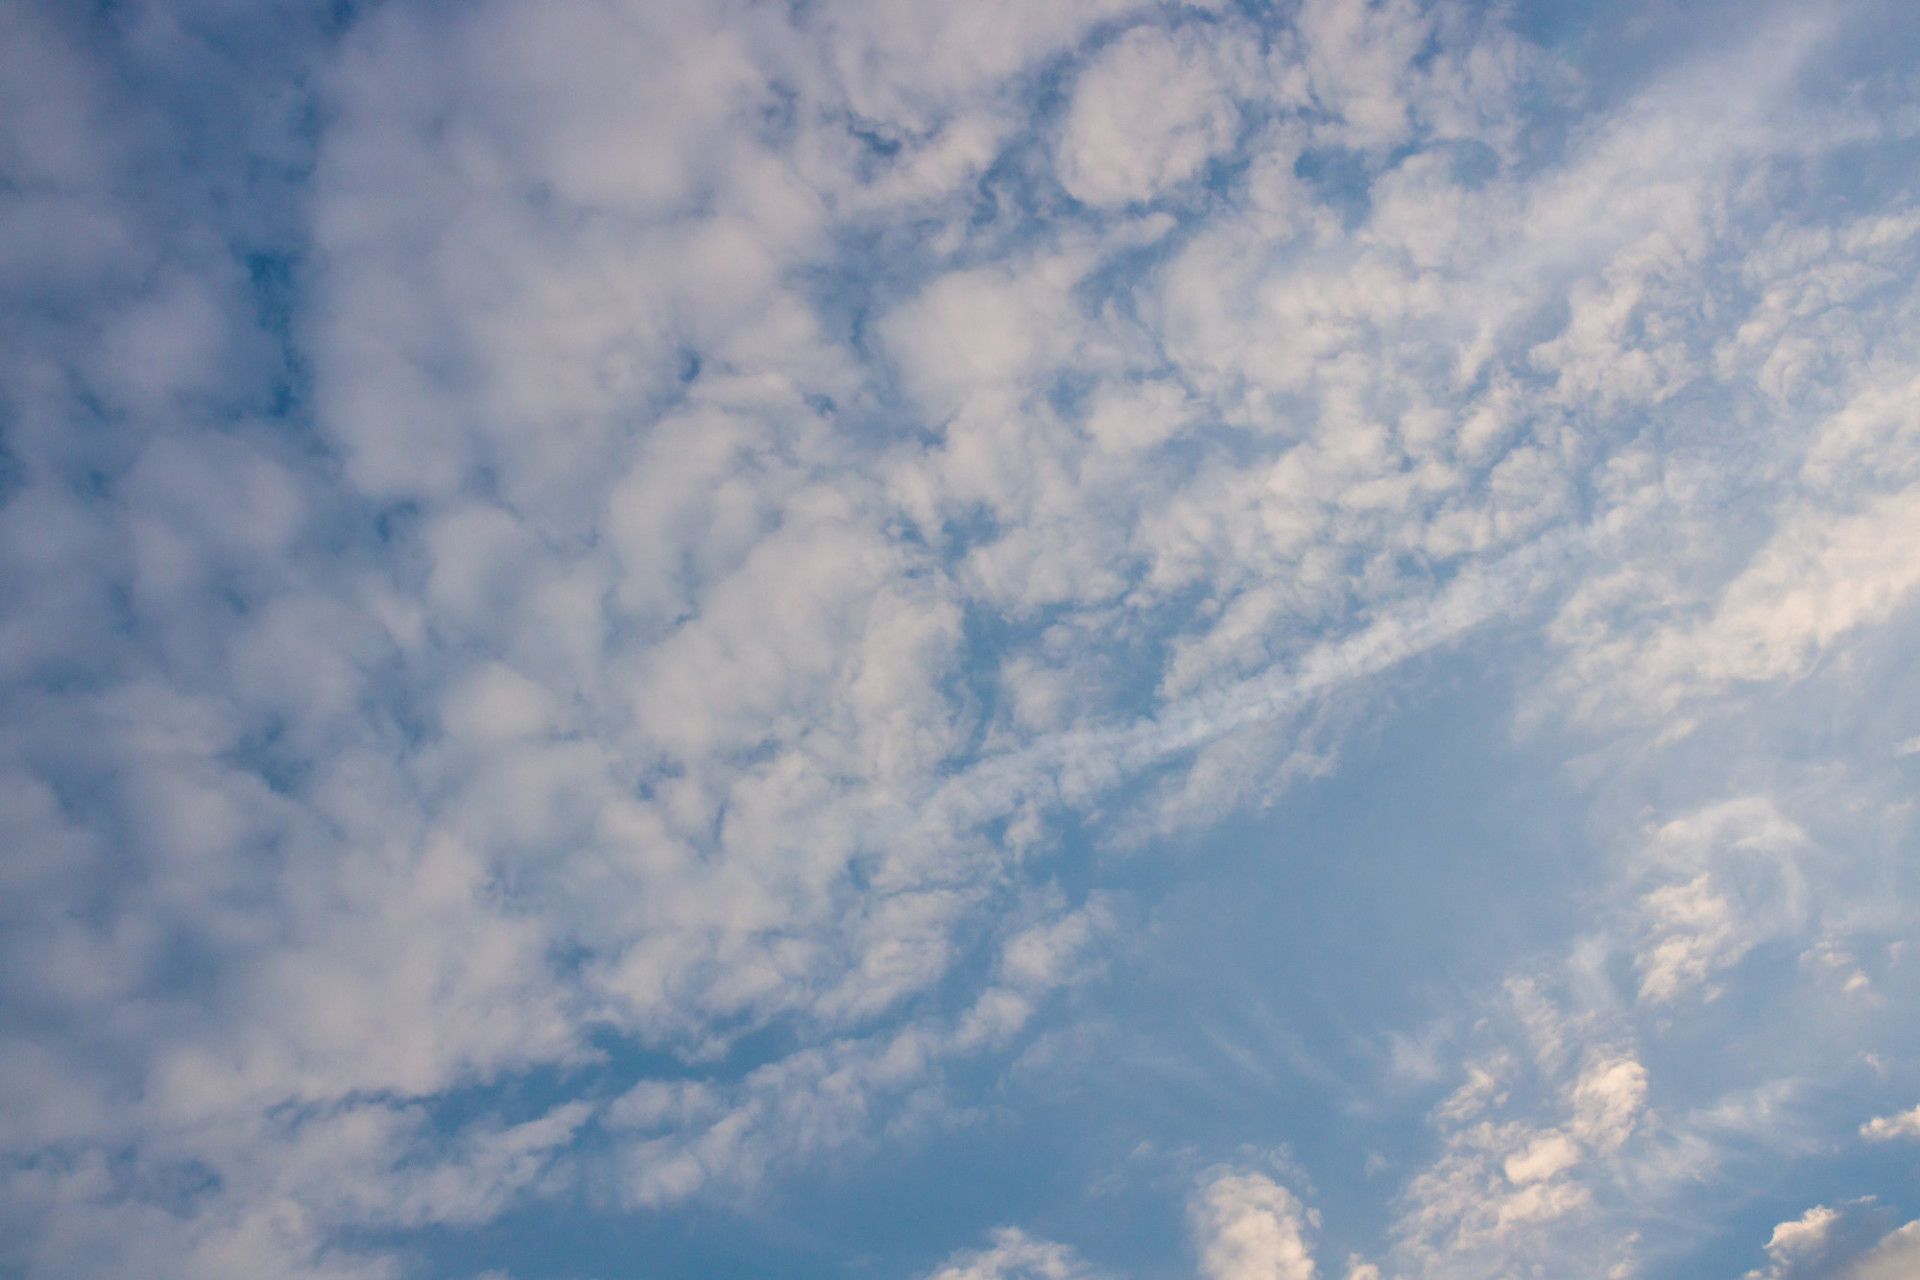 Blue cloudy sky for skyreplacement